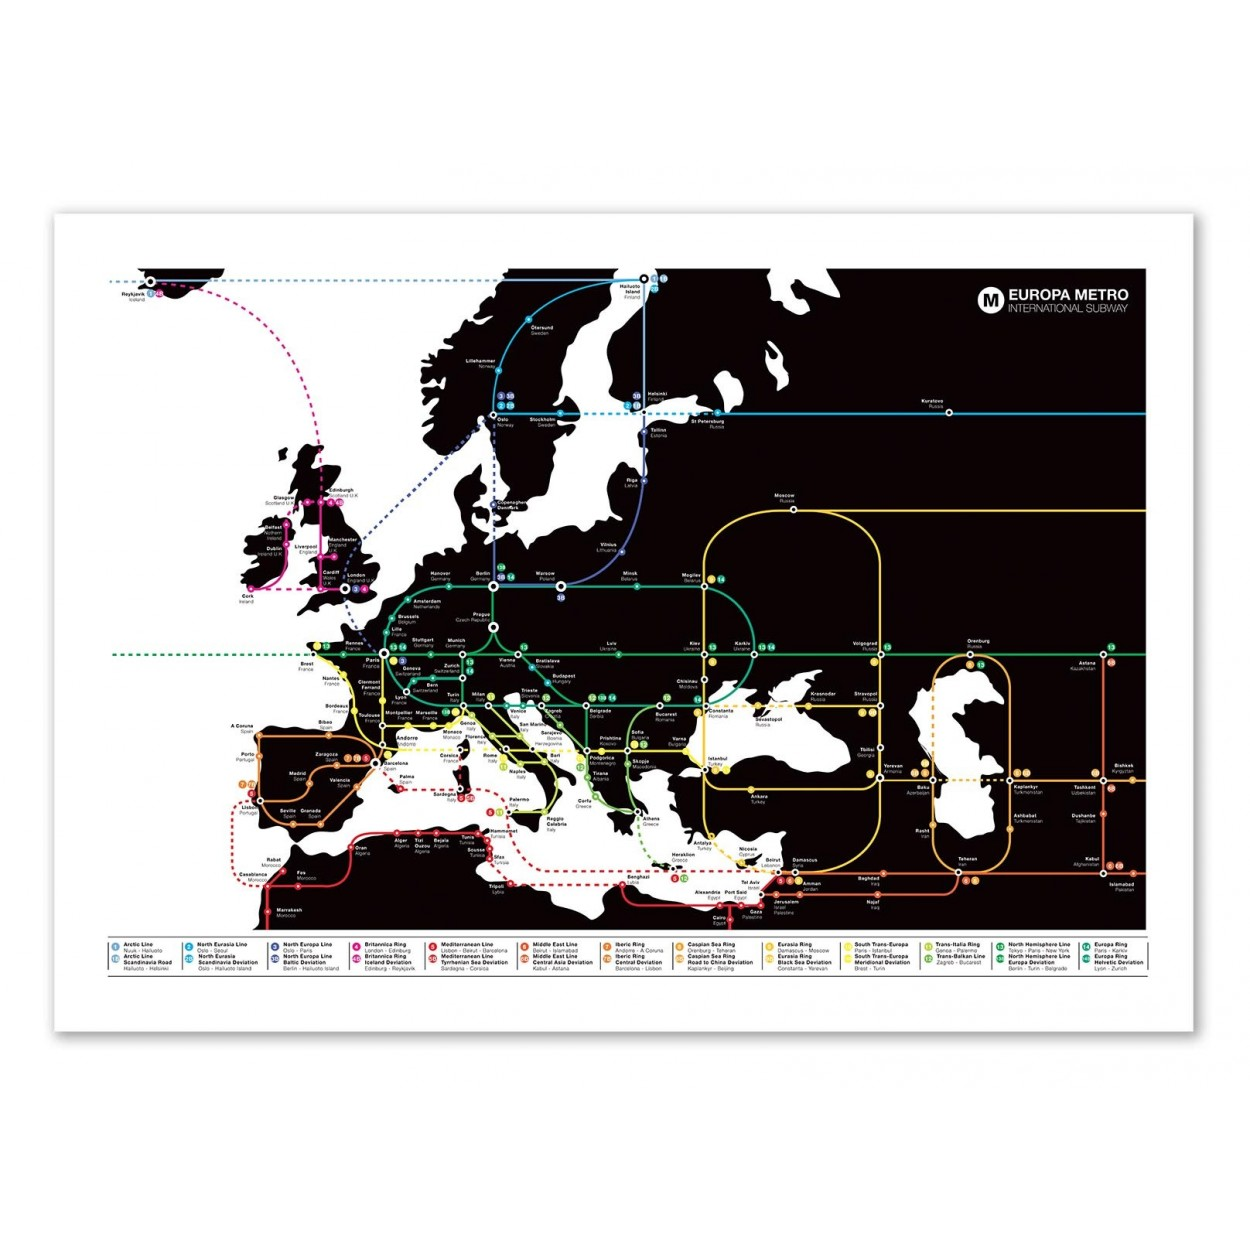 Photo art poster frame and illustration of europa design metro map europa world map olivier bourdereau gumiabroncs Choice Image